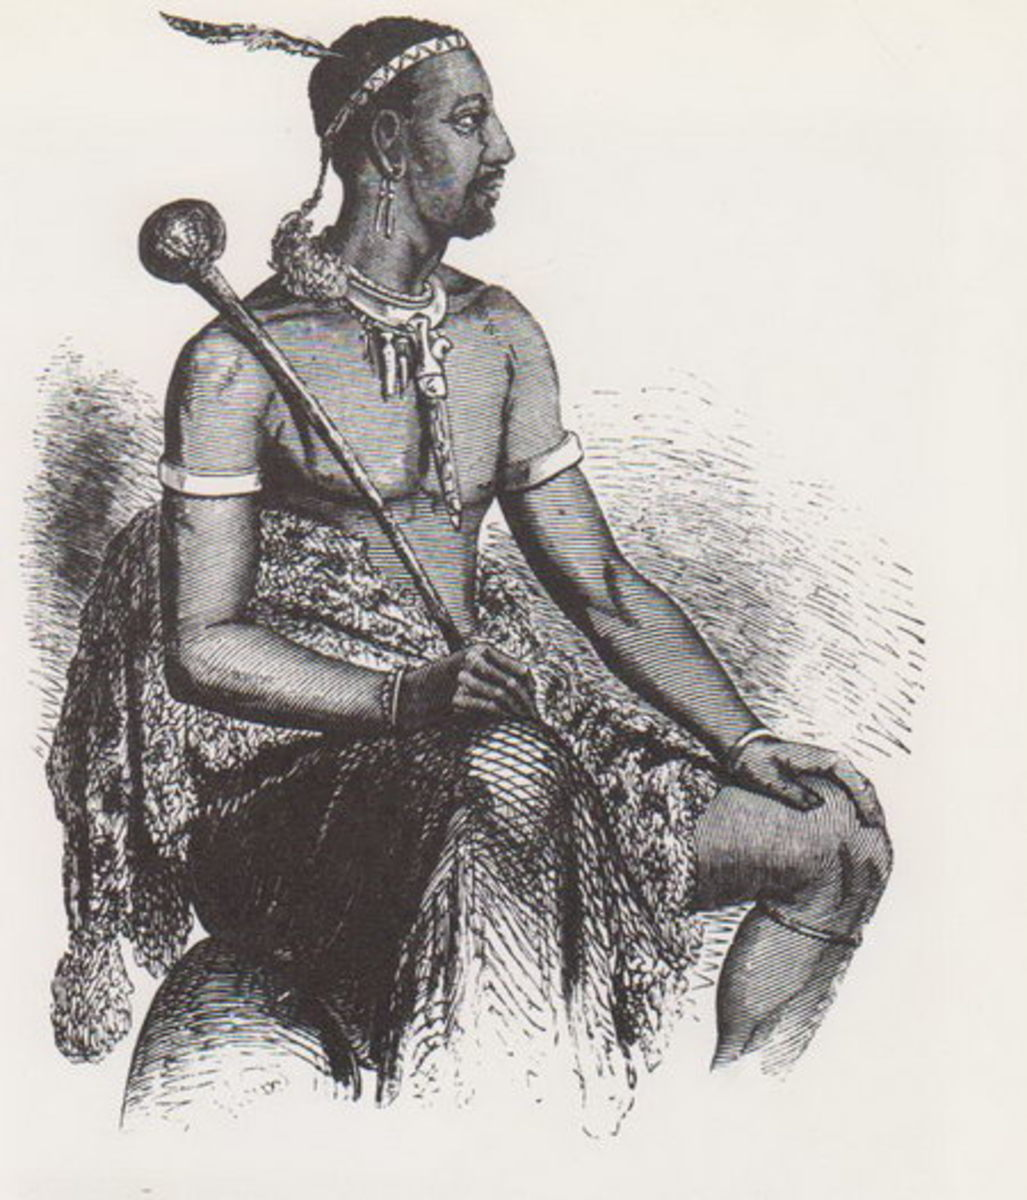 King Moshweshwe I who ruled during the time of Shaka/Tshaka. He stood up against the Zulu, gained several battles against the European invaders and managed to create a Basotho state that escaped incorporation in racist South Africa. Lesotho's first k